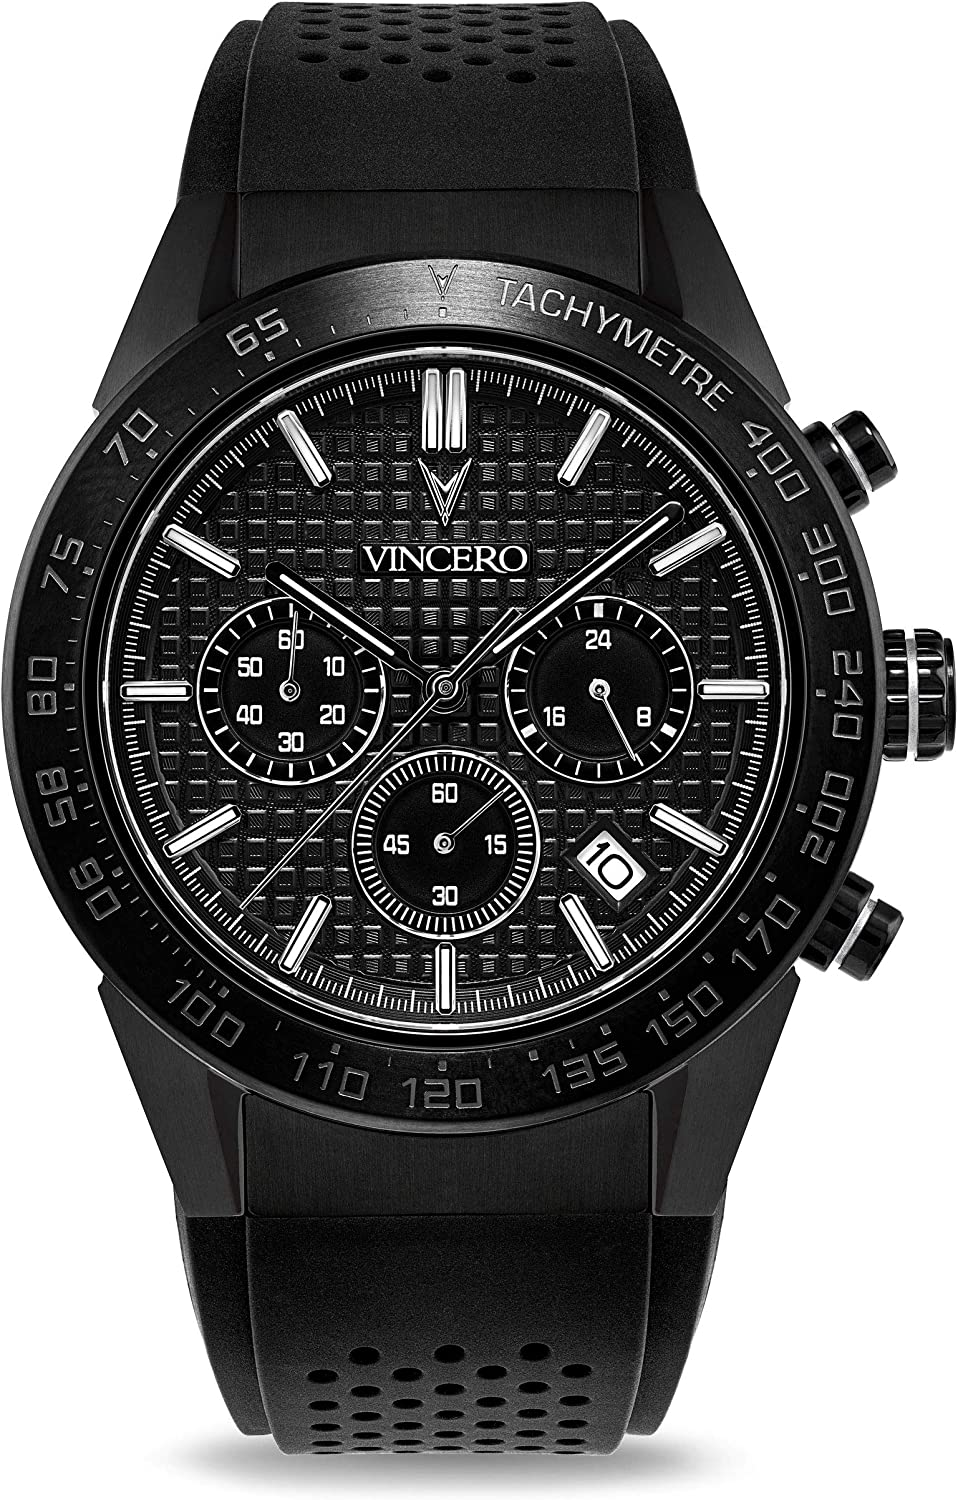 Top 20 Mens Chronograph Watches on a Budget 2019